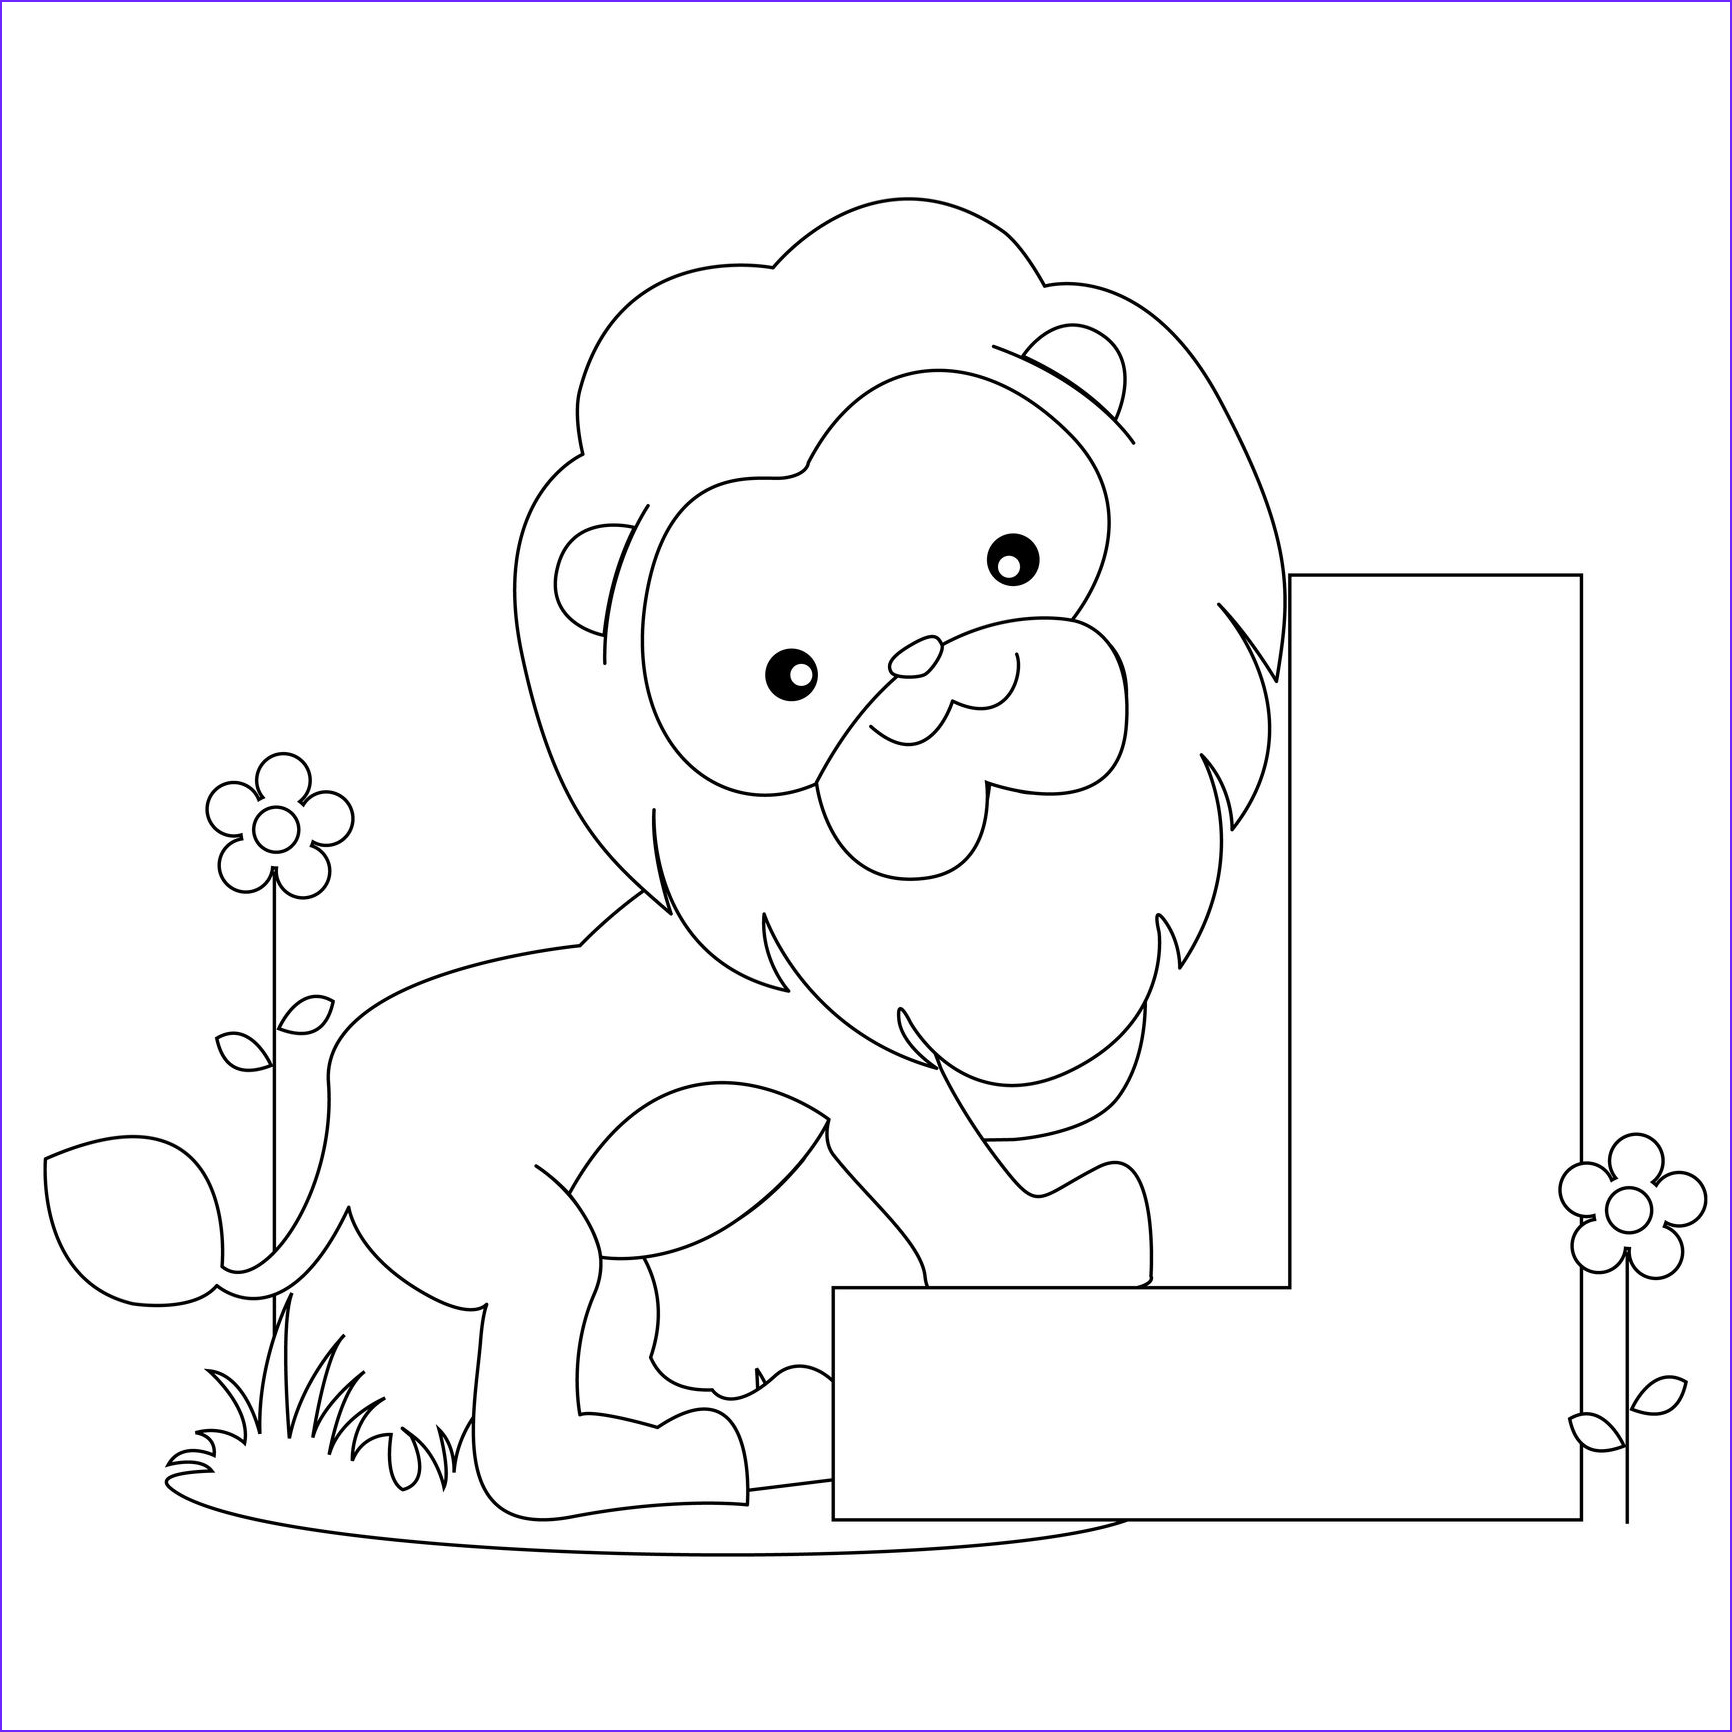 Letter I Coloring Pages for Preschoolers Best Of Stock Image Detail for Animal Alphabet Letter L Coloring